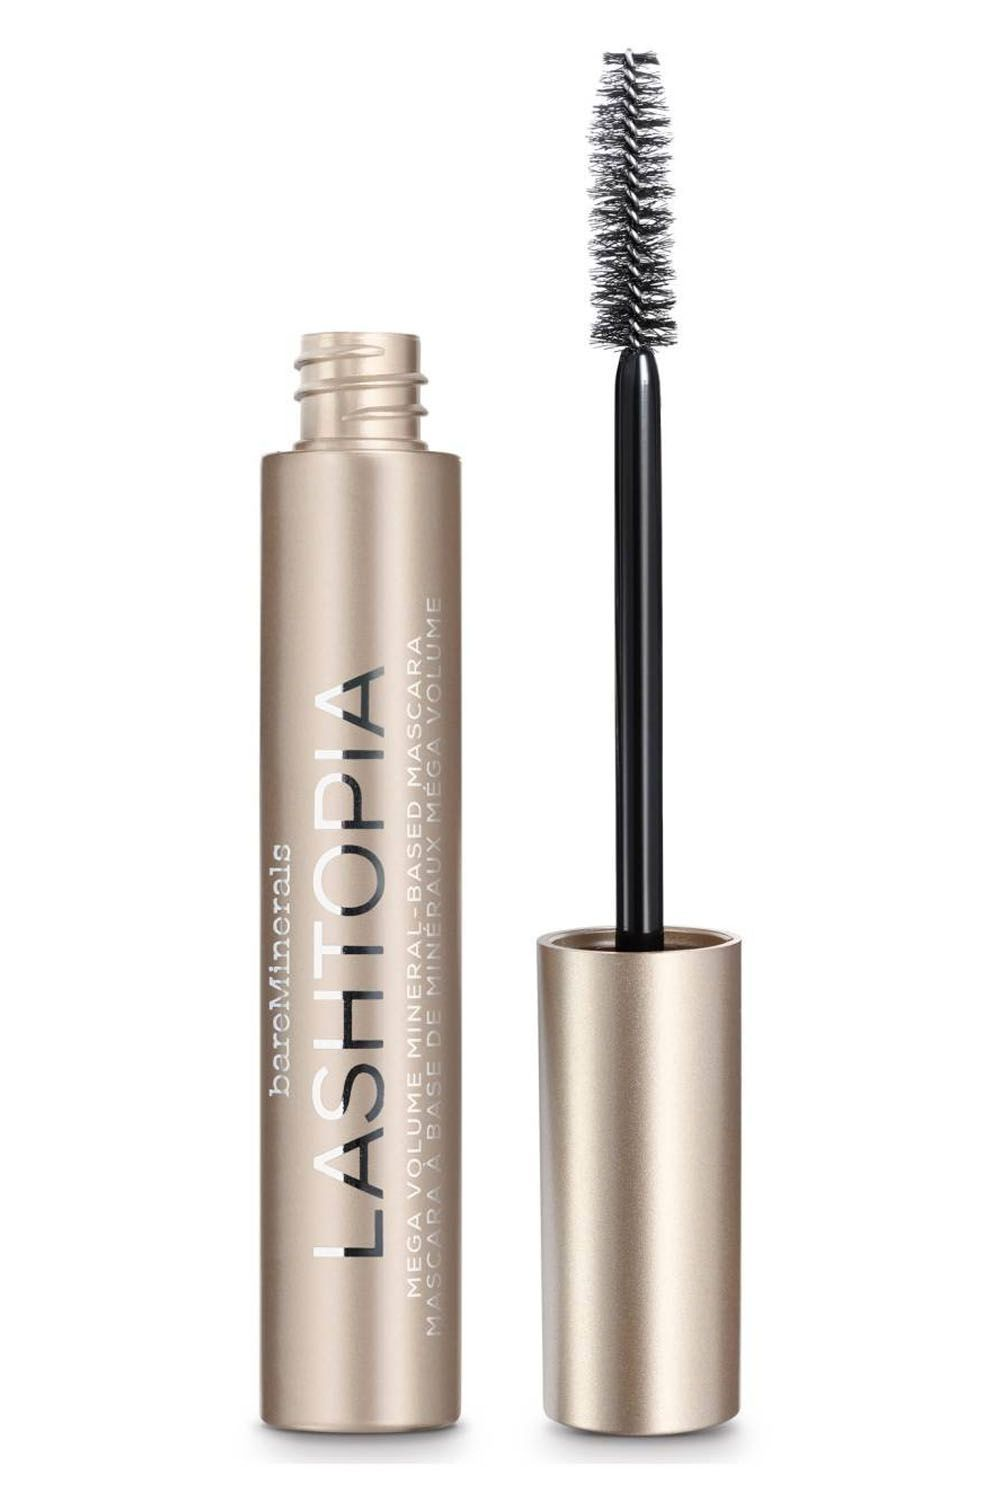 aa060724bfd 16 Best Mascaras for Long Lashes According to Makeup Artists - Best  Drugstore and Sephora Mascaras